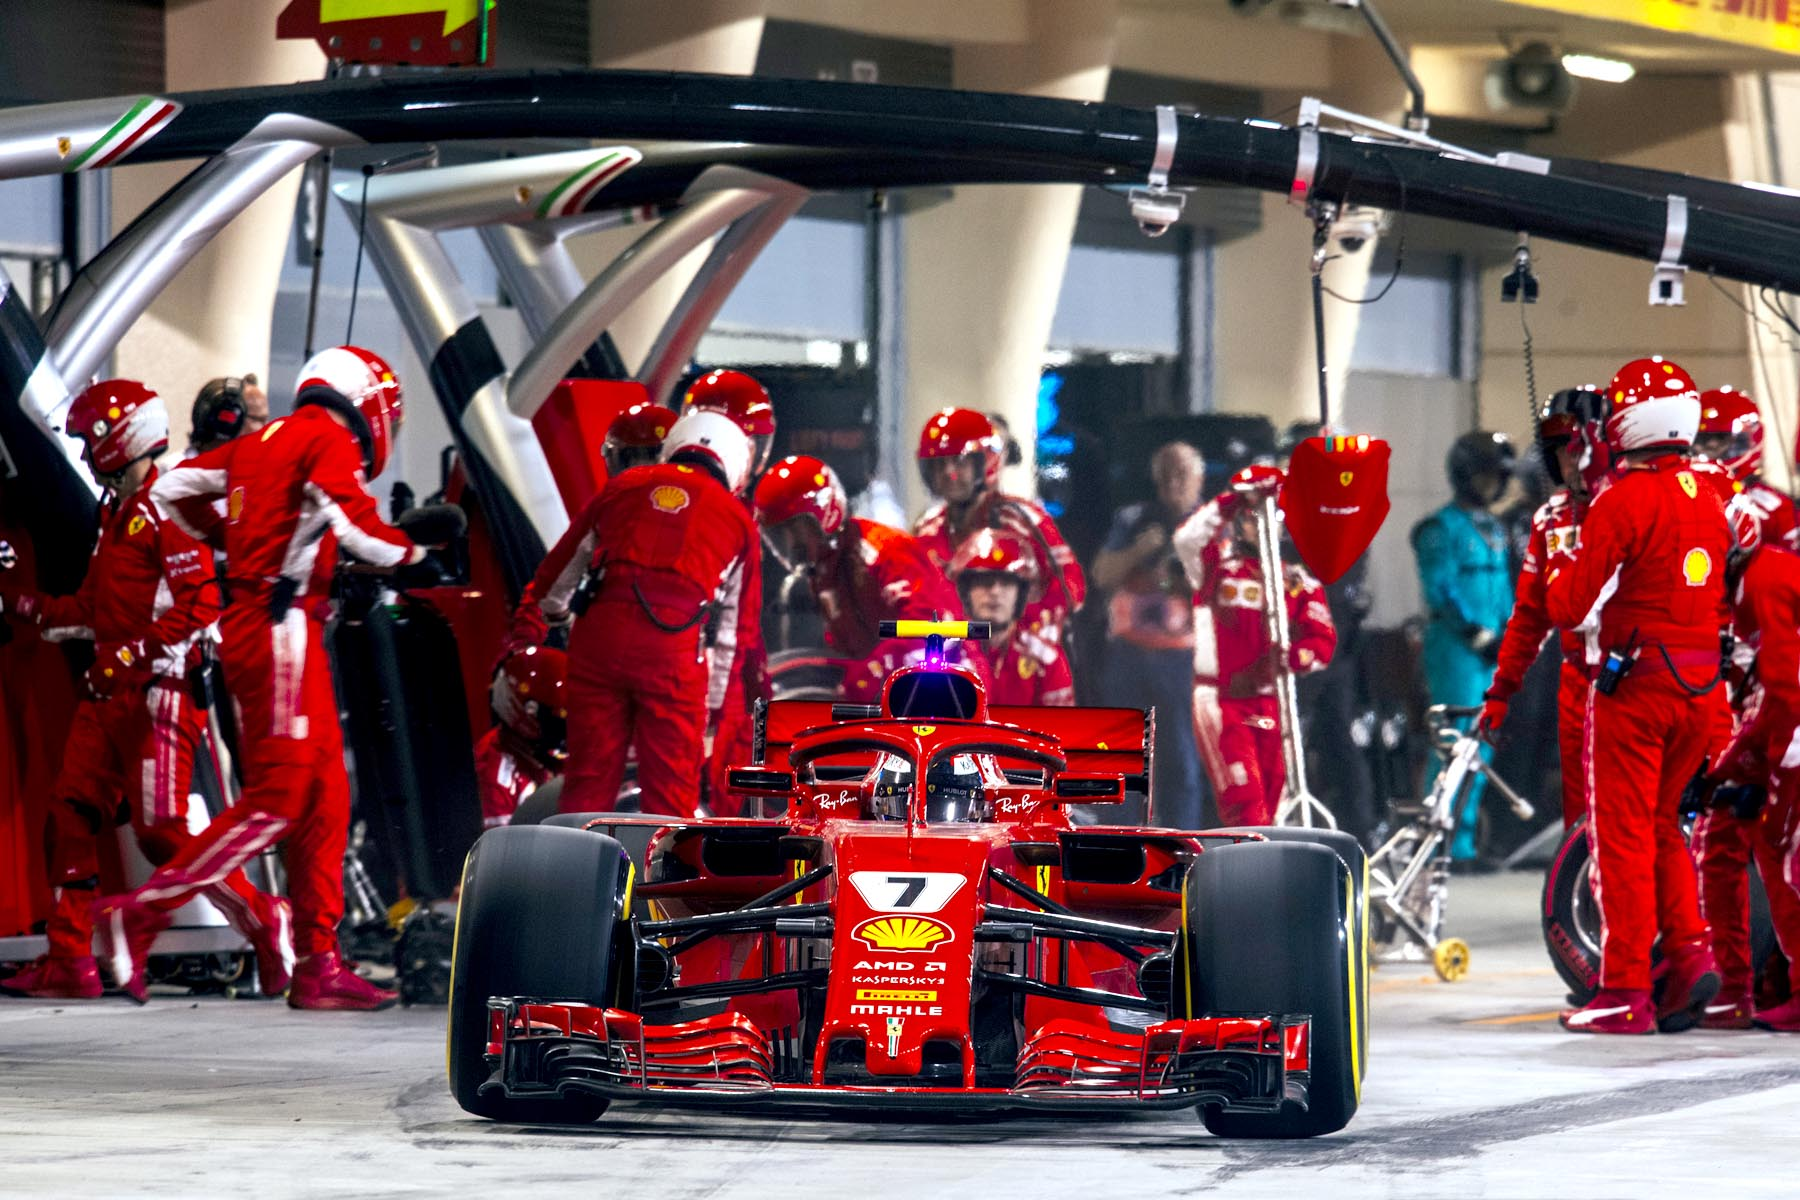 Kimi Raikkonen pulls away from a pit stop at the 2018 Bahrain Grand Prix.